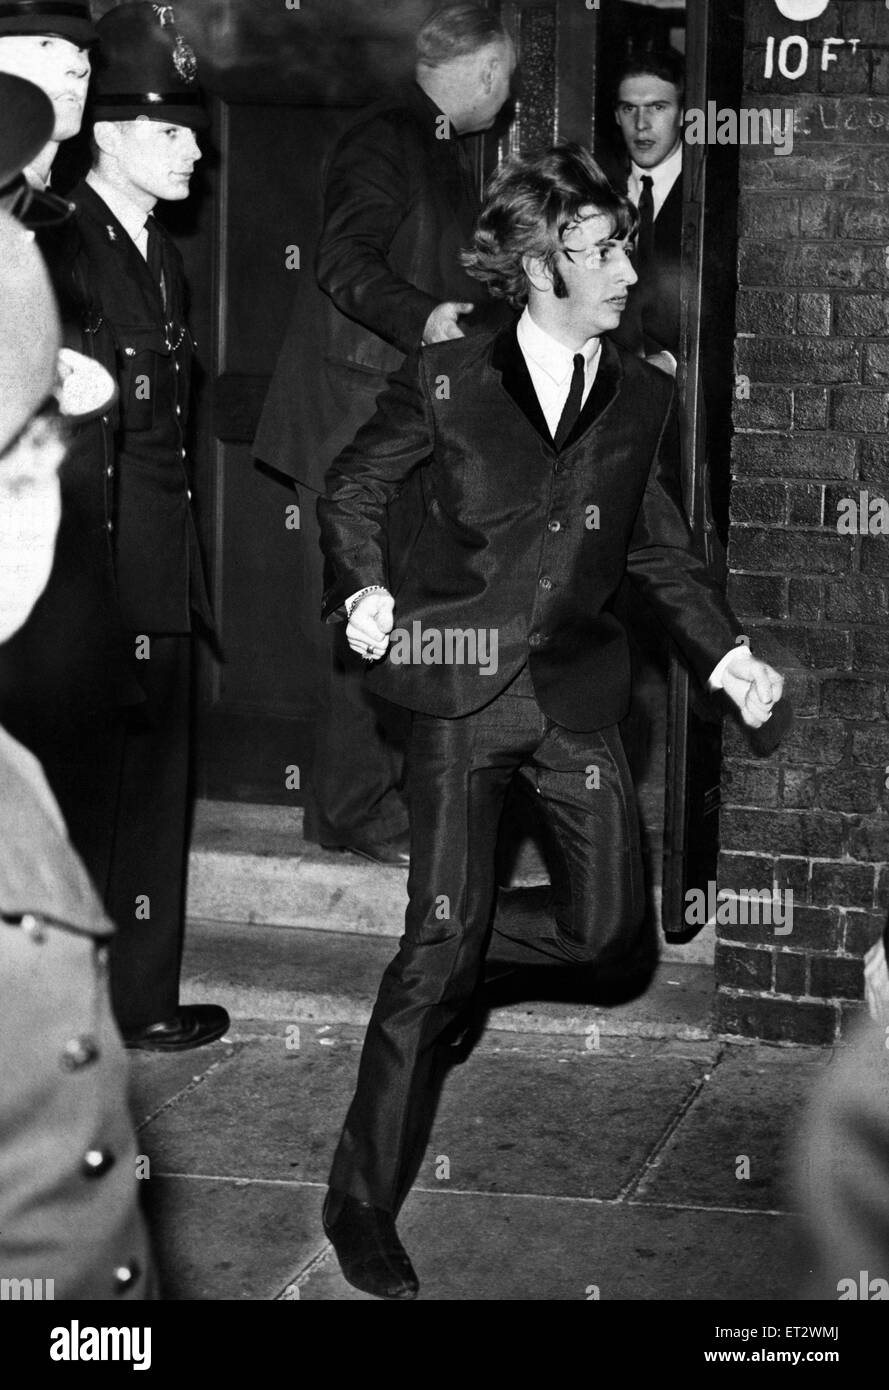 Beatles Drummer Ringo Starr Bolts From A Side Exit To A Waiting